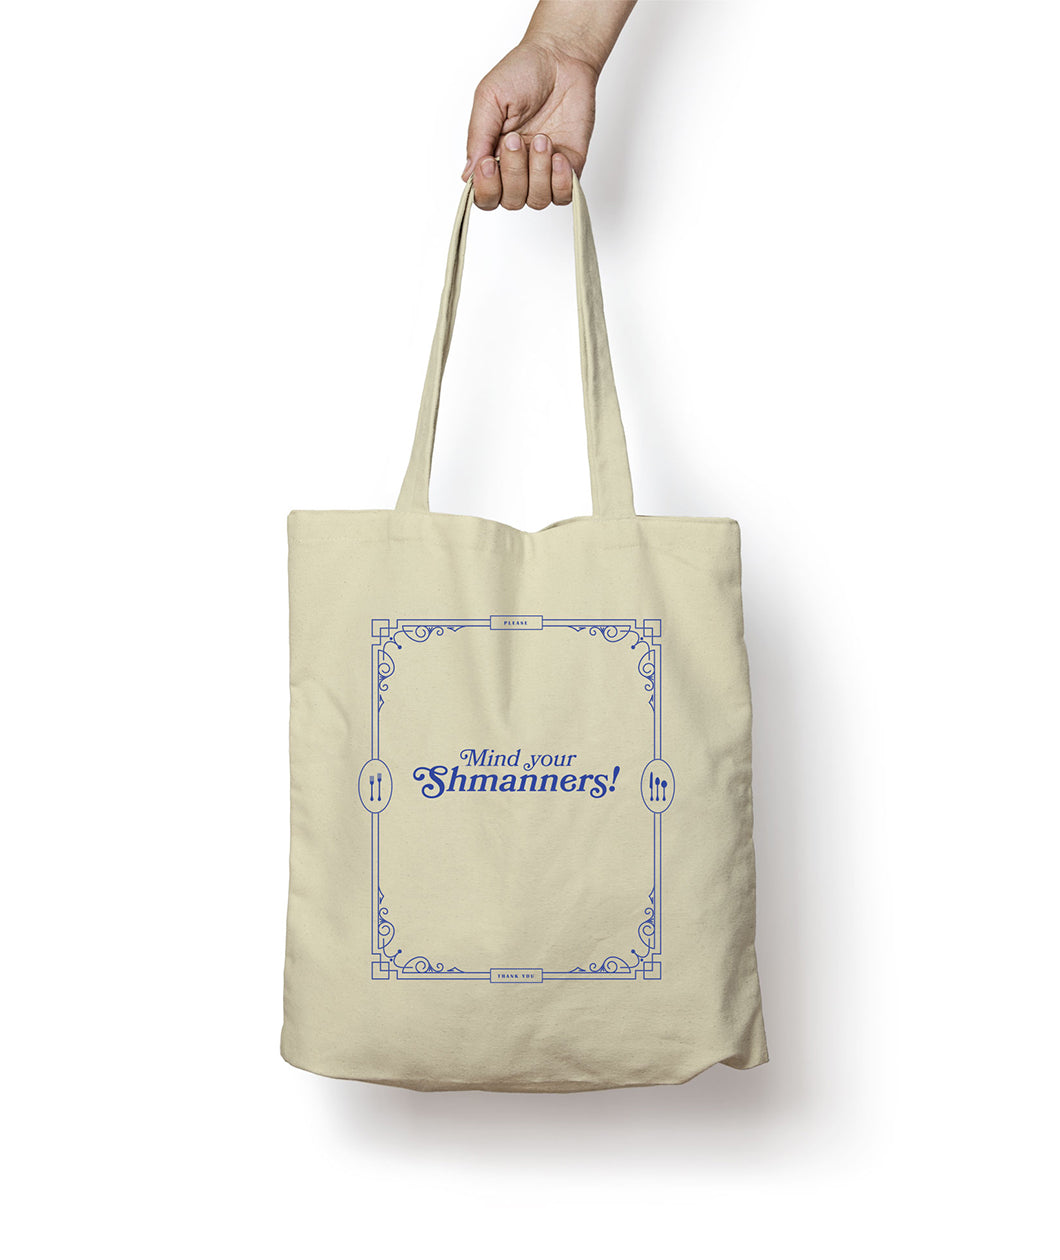 Mind Your Shmanners! Tote Bag